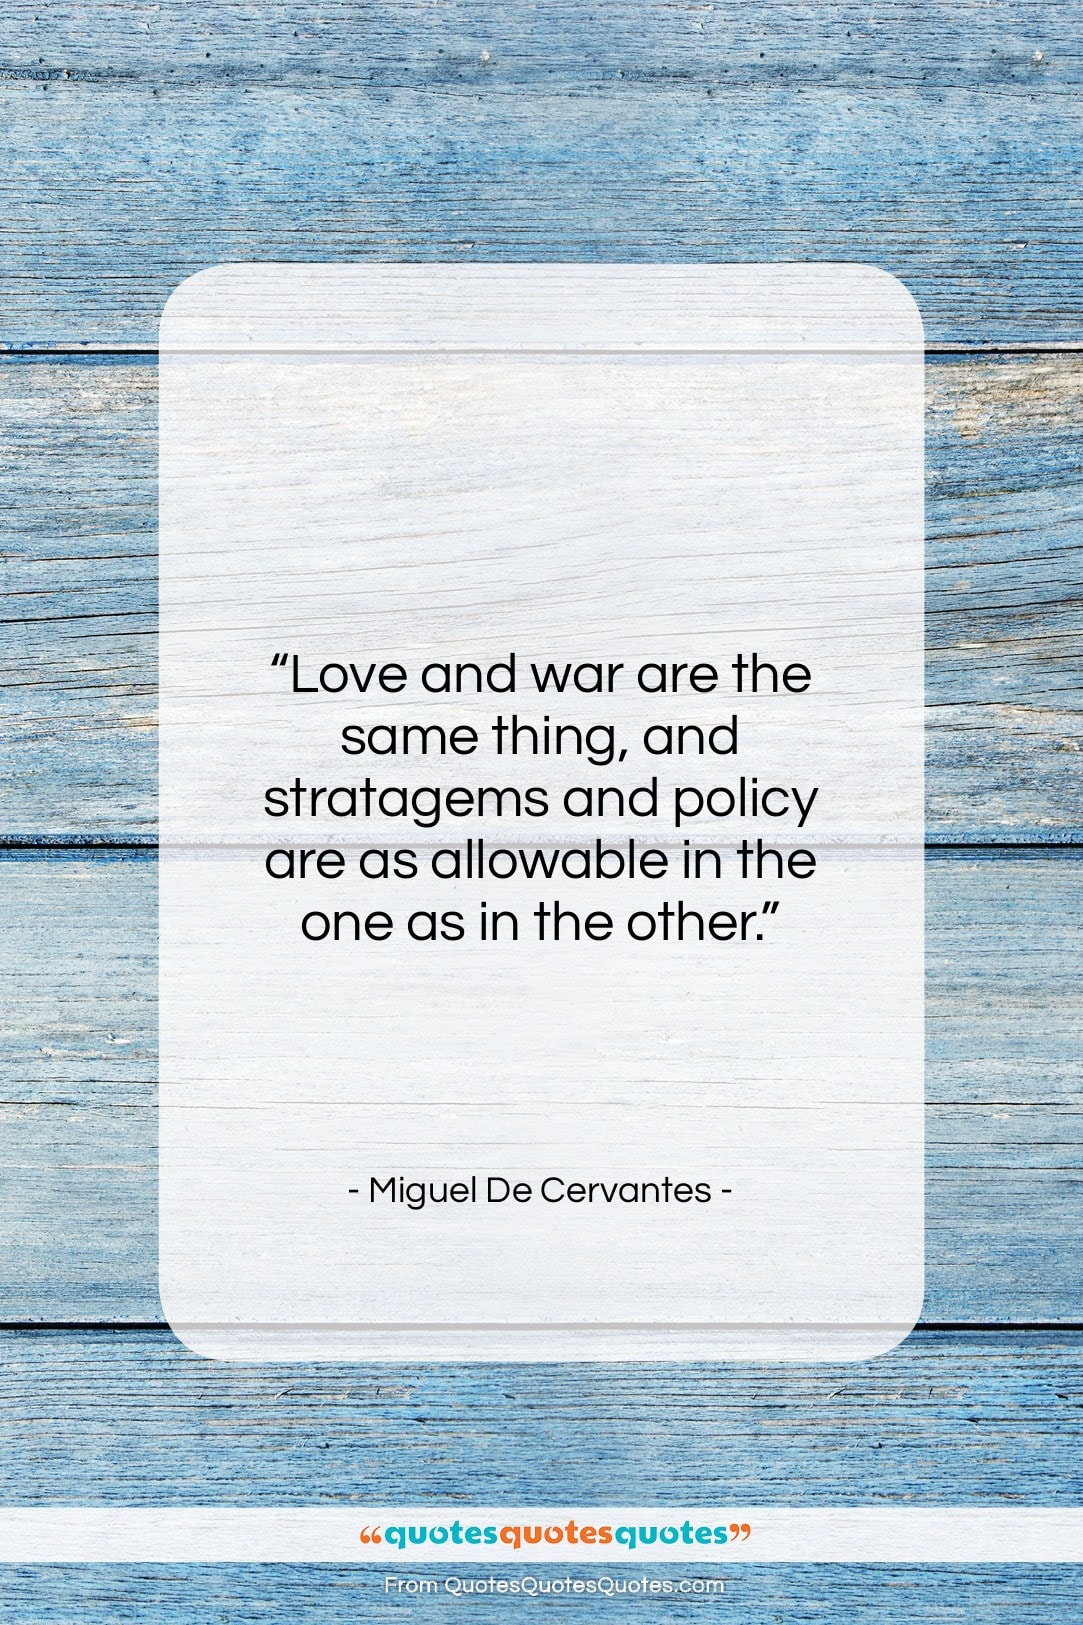 """Miguel De Cervantes quote: """"Love and war are the same thing,…""""- at QuotesQuotesQuotes.com"""